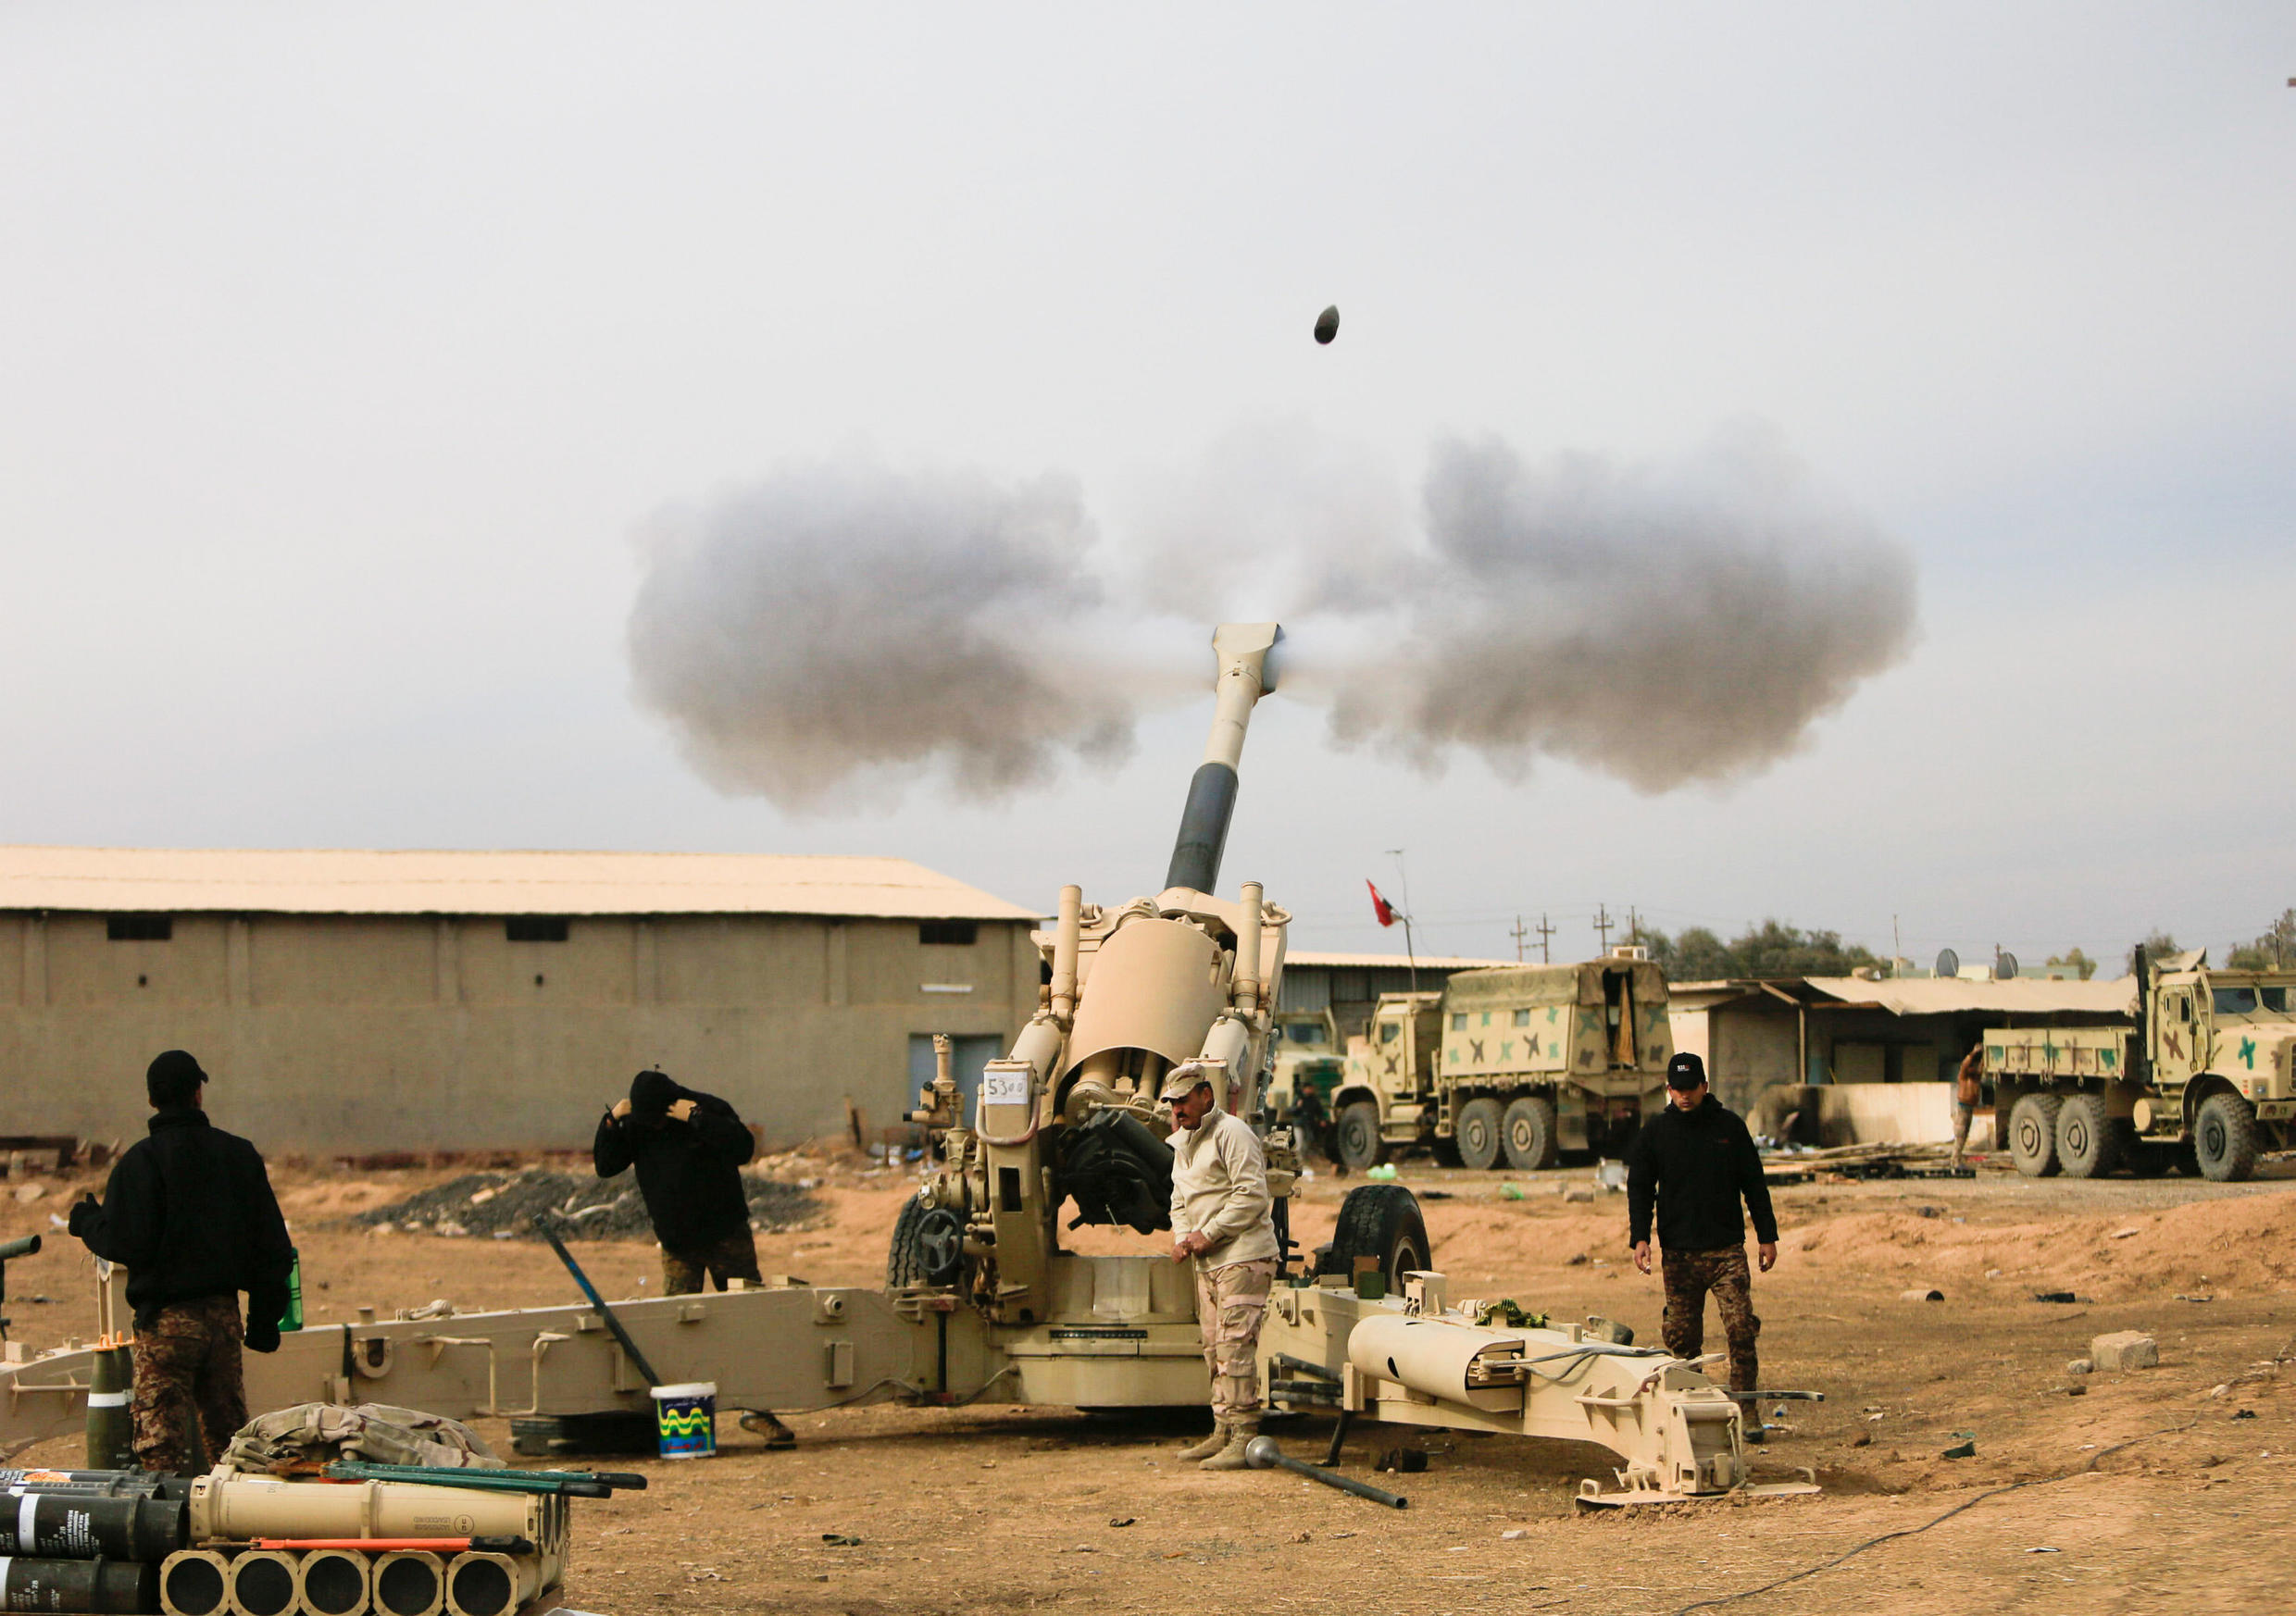 Iraqi army fires towards Islamic State militant positions in Mosul from outskirts of Bartila, Iraq December 8, 2016.